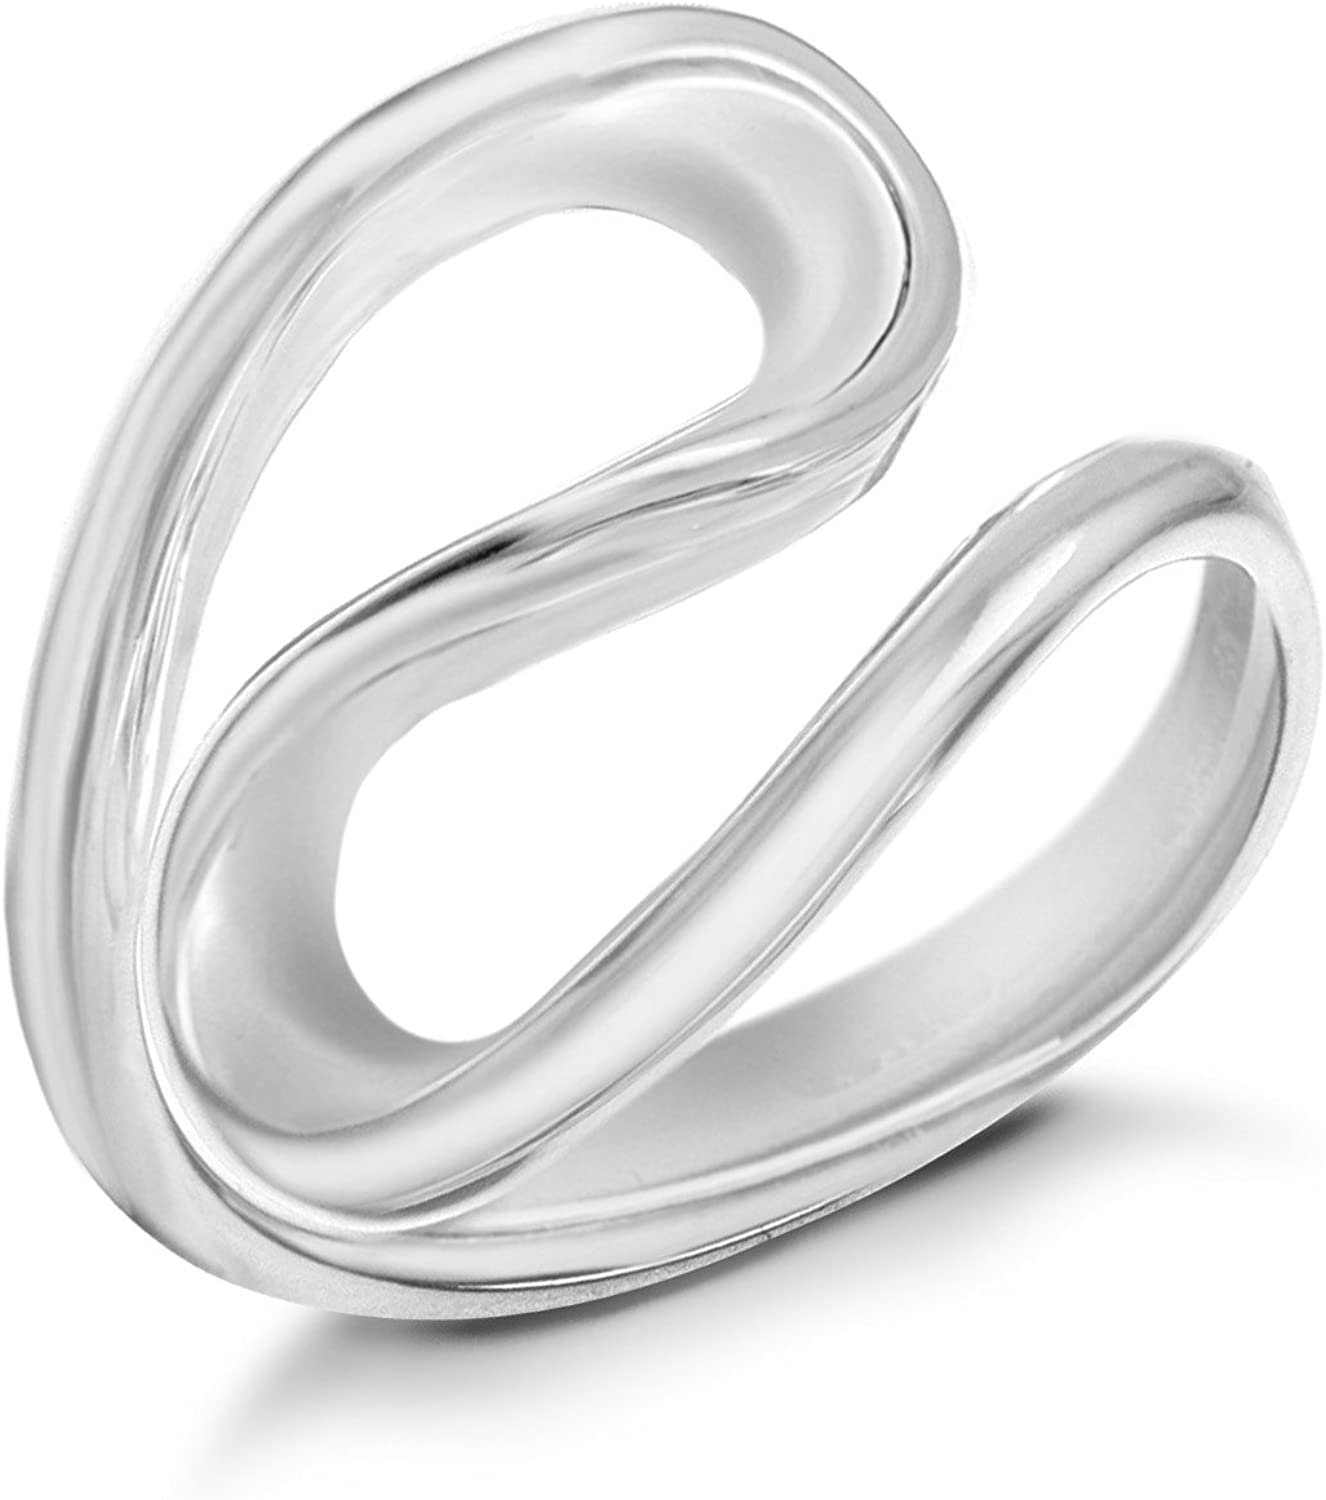 Sterling Silver Double Loop Ring